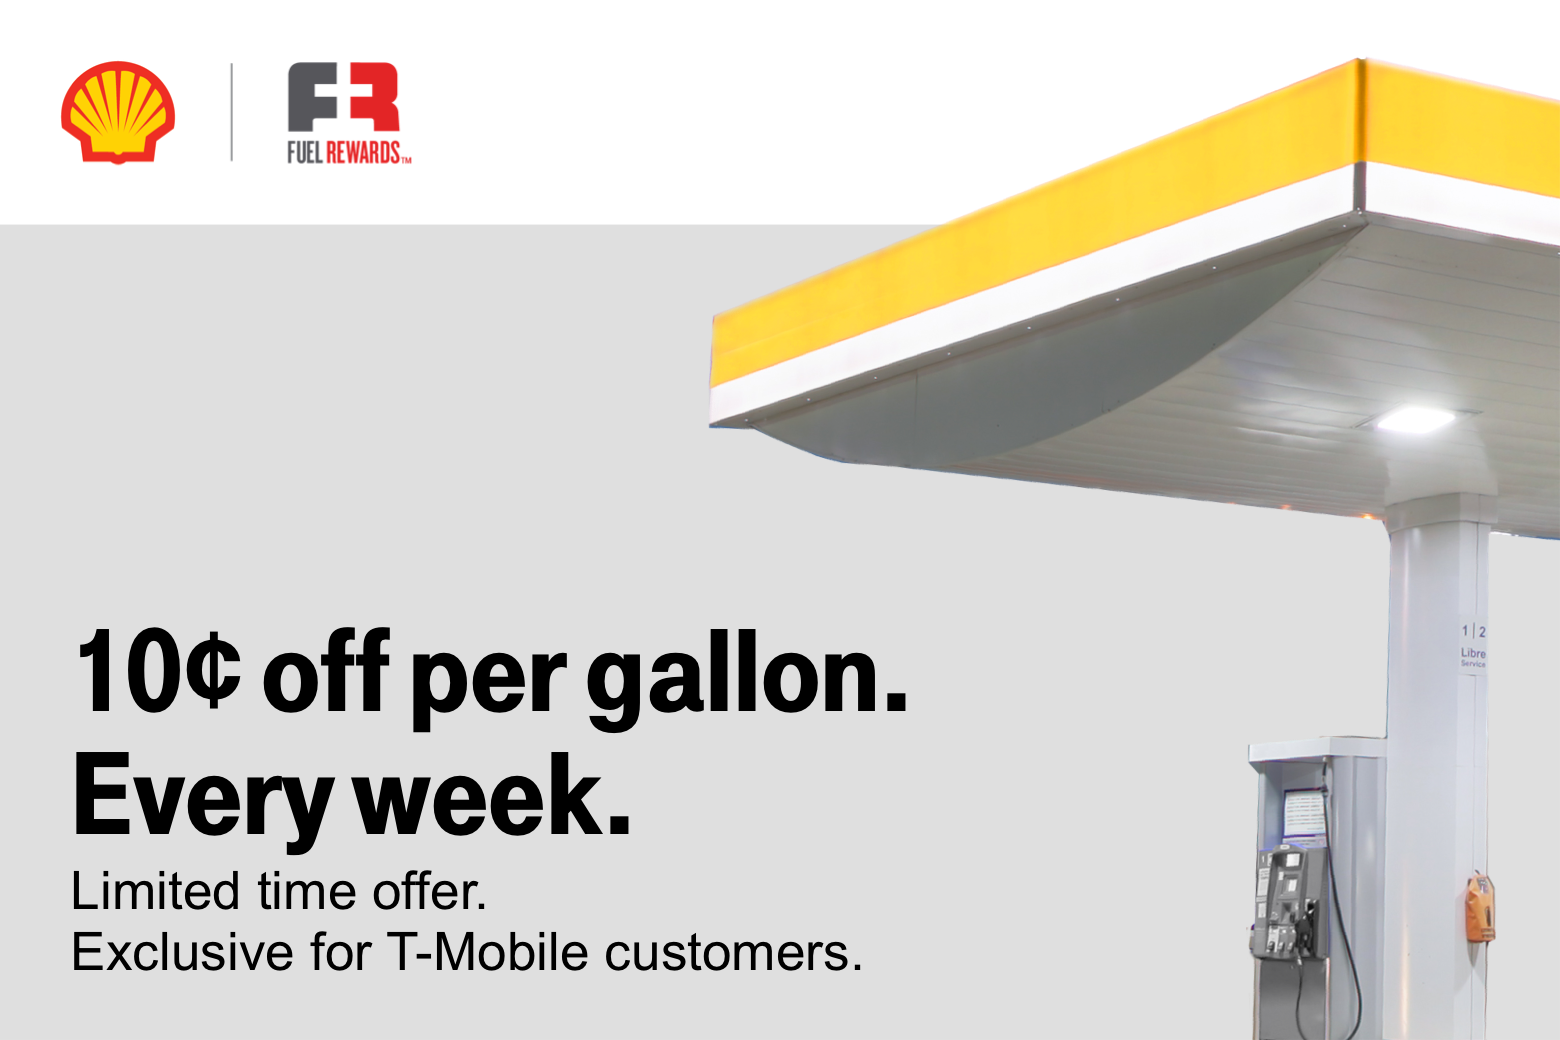 10 cents off per gallon. Every week. Limited time offer. Exclusive for T-Mobile customers.